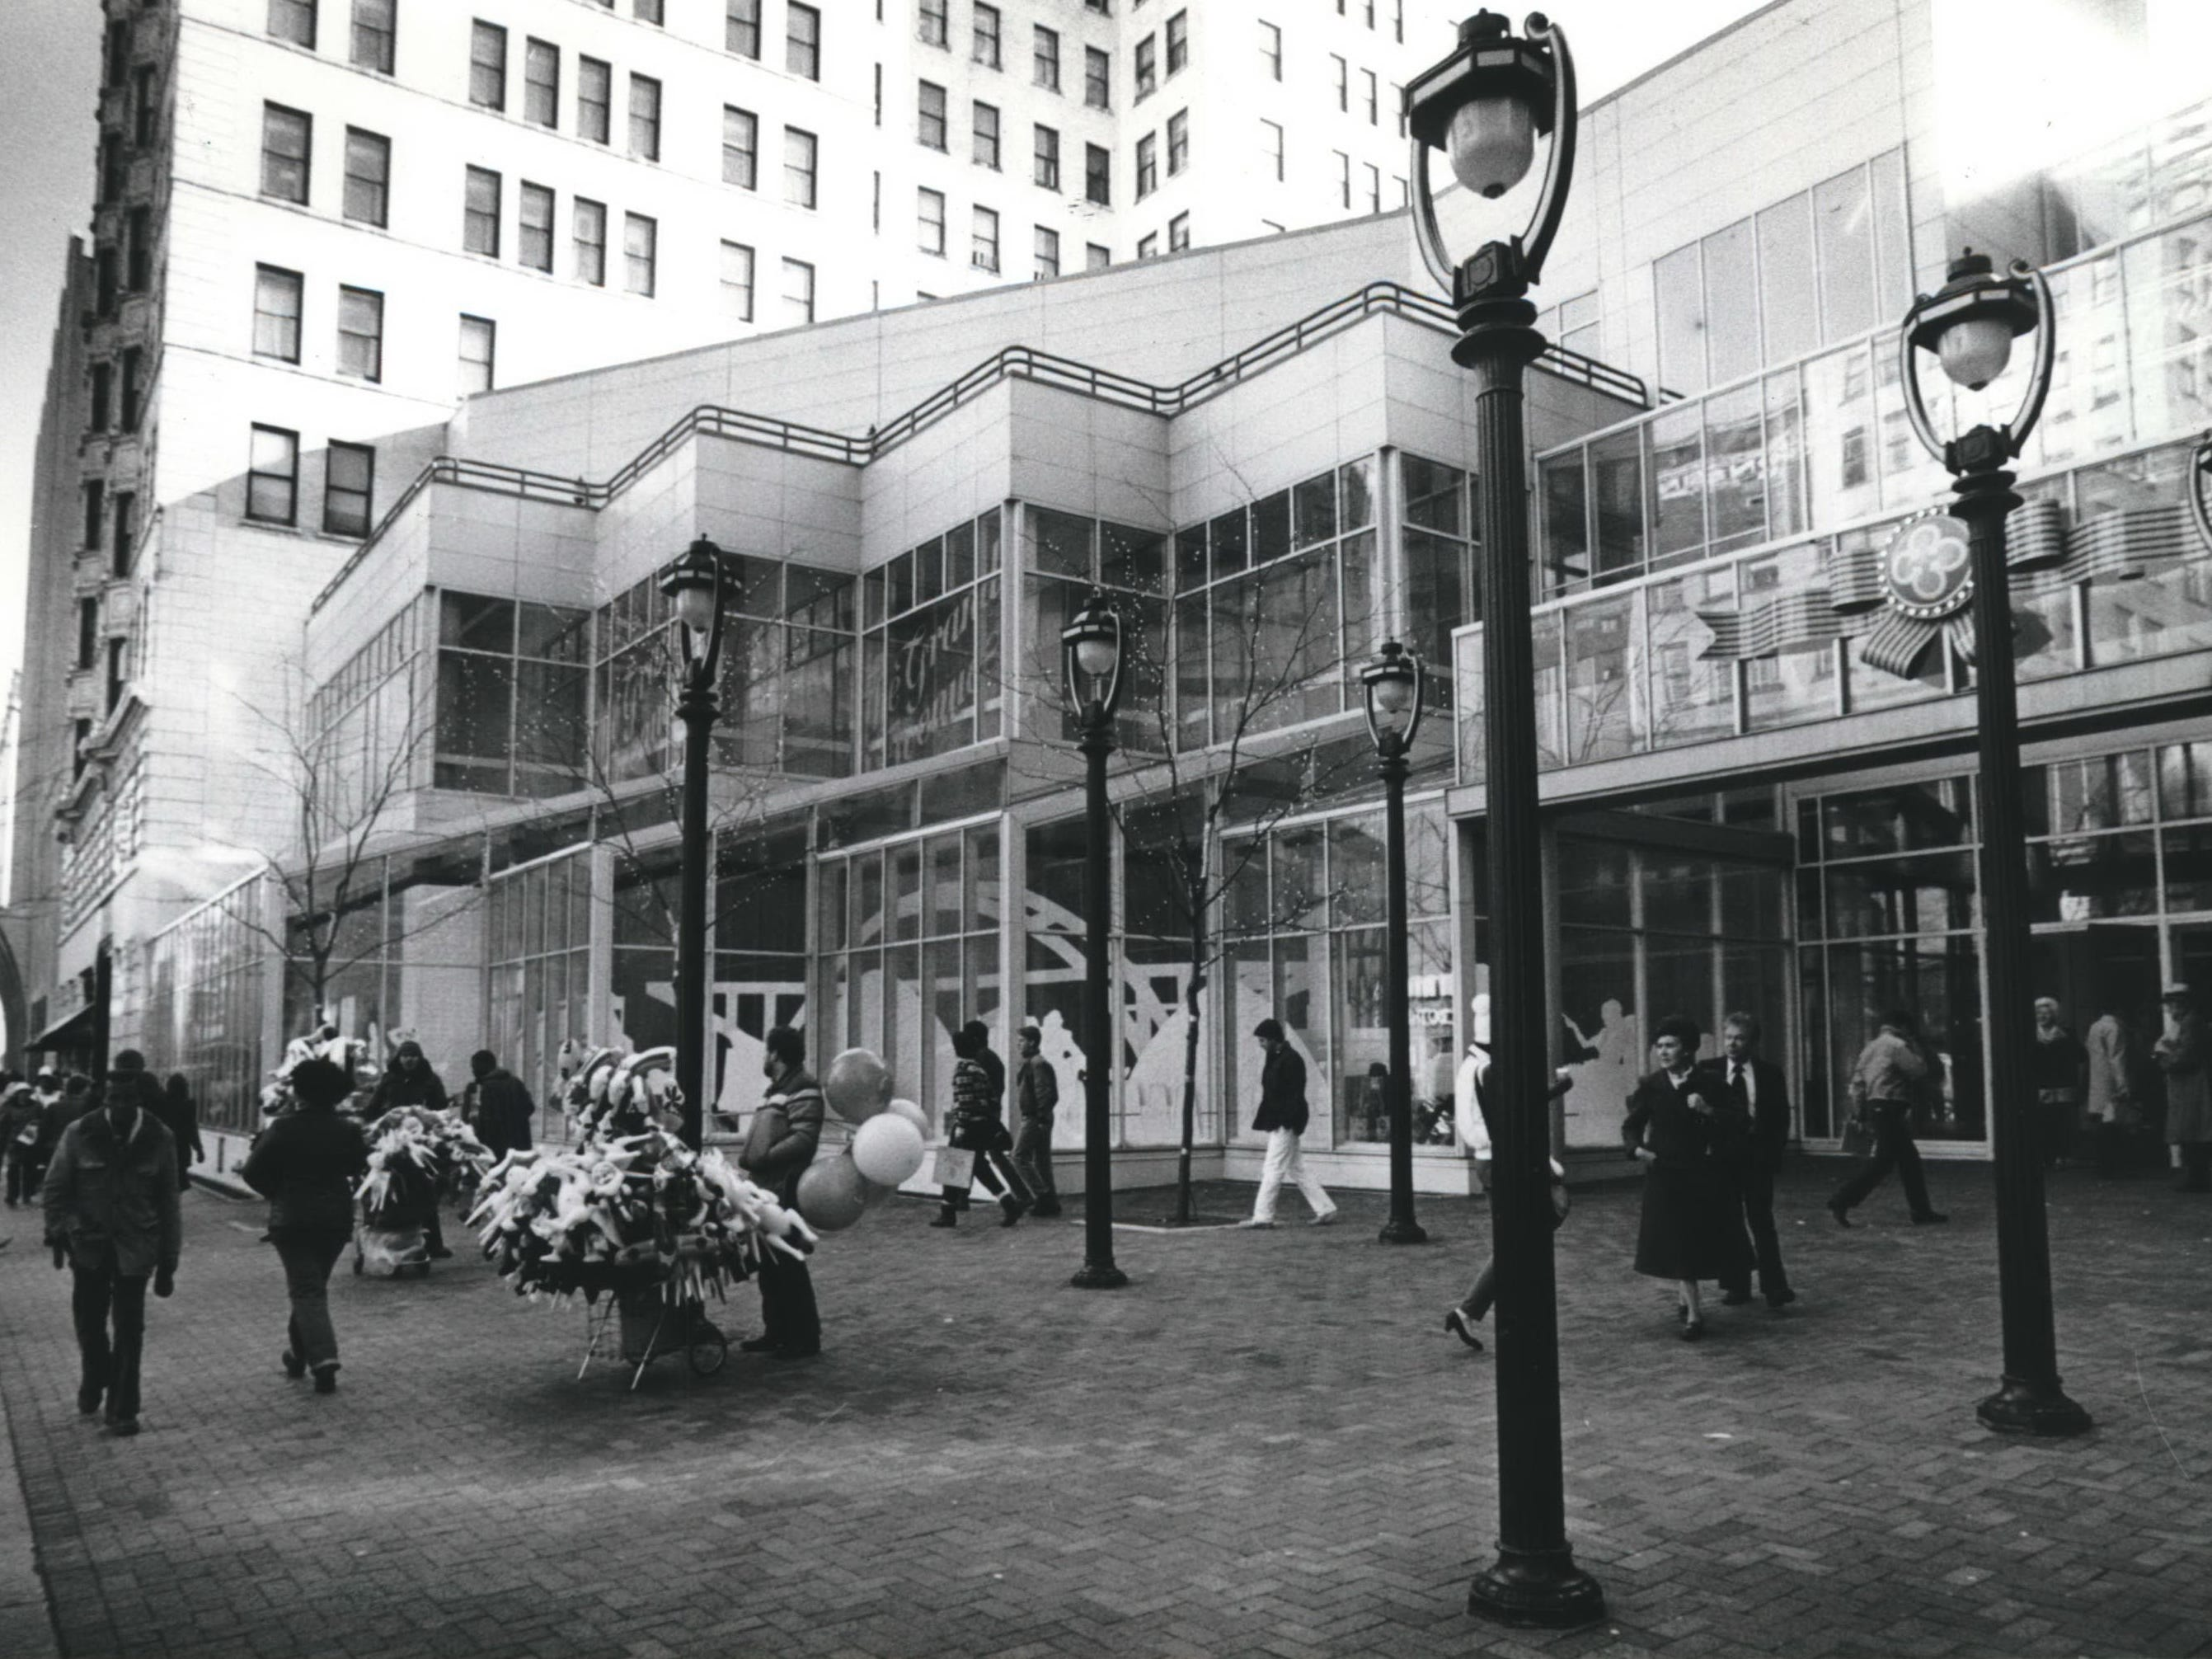 tax incremental financing was important in the creation of the Grand Avenue retail center in Milwaukee. The center was key to revitalization of the city's Downtown. this picture shows the entrance to the new arcade at North 3rd Street. and West Wisconsin Avenue.